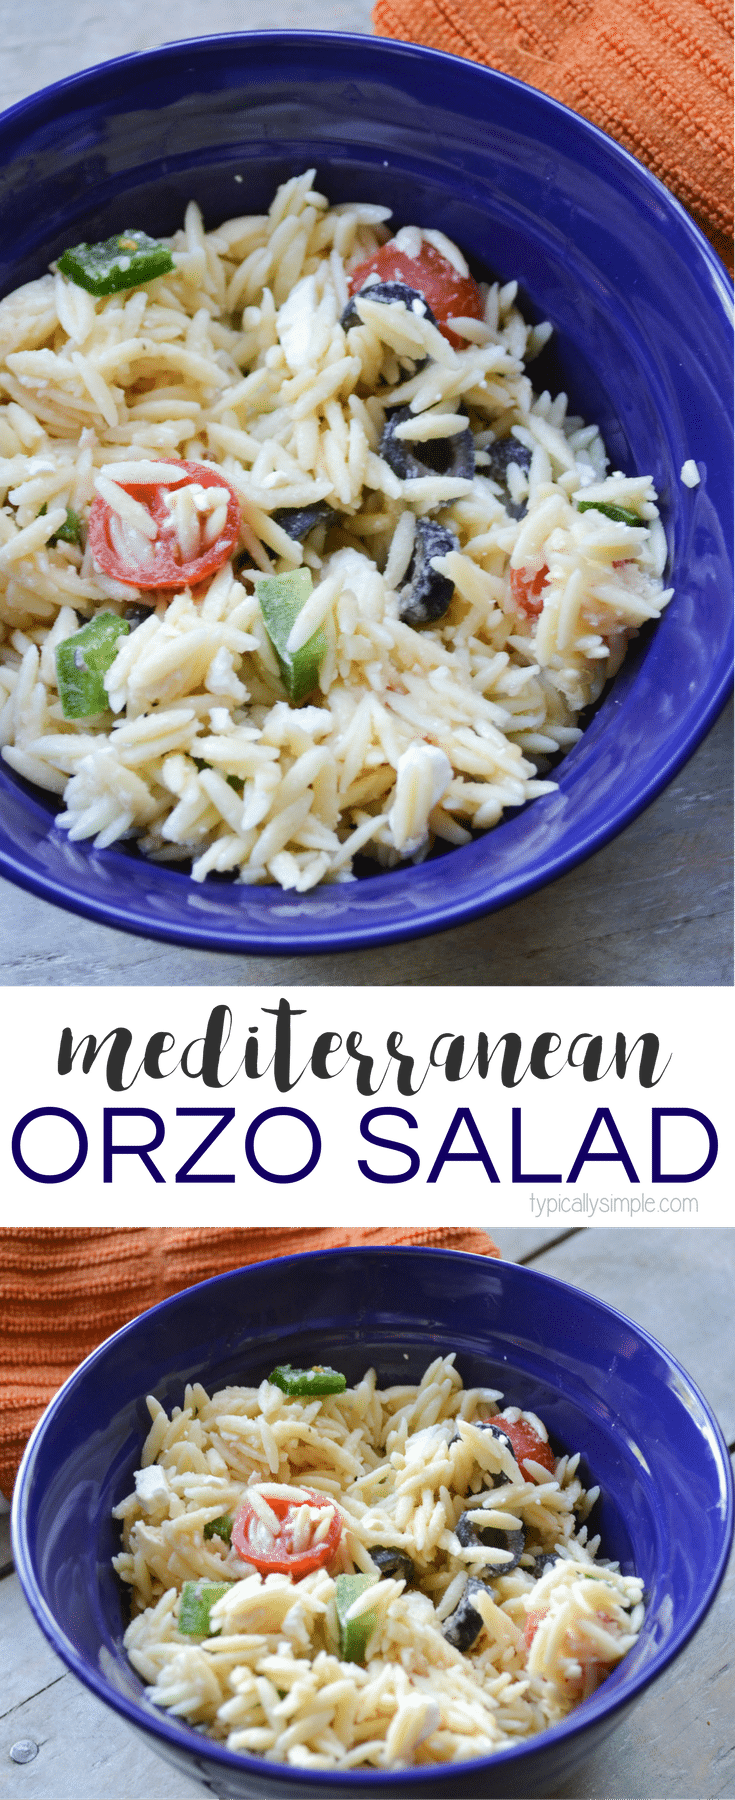 This Mediterranean orzo salad includes feta cheese and fresh, crisp veggies. It pairs well with so many main dishes and is especially yummy when served at a summer BBQ!